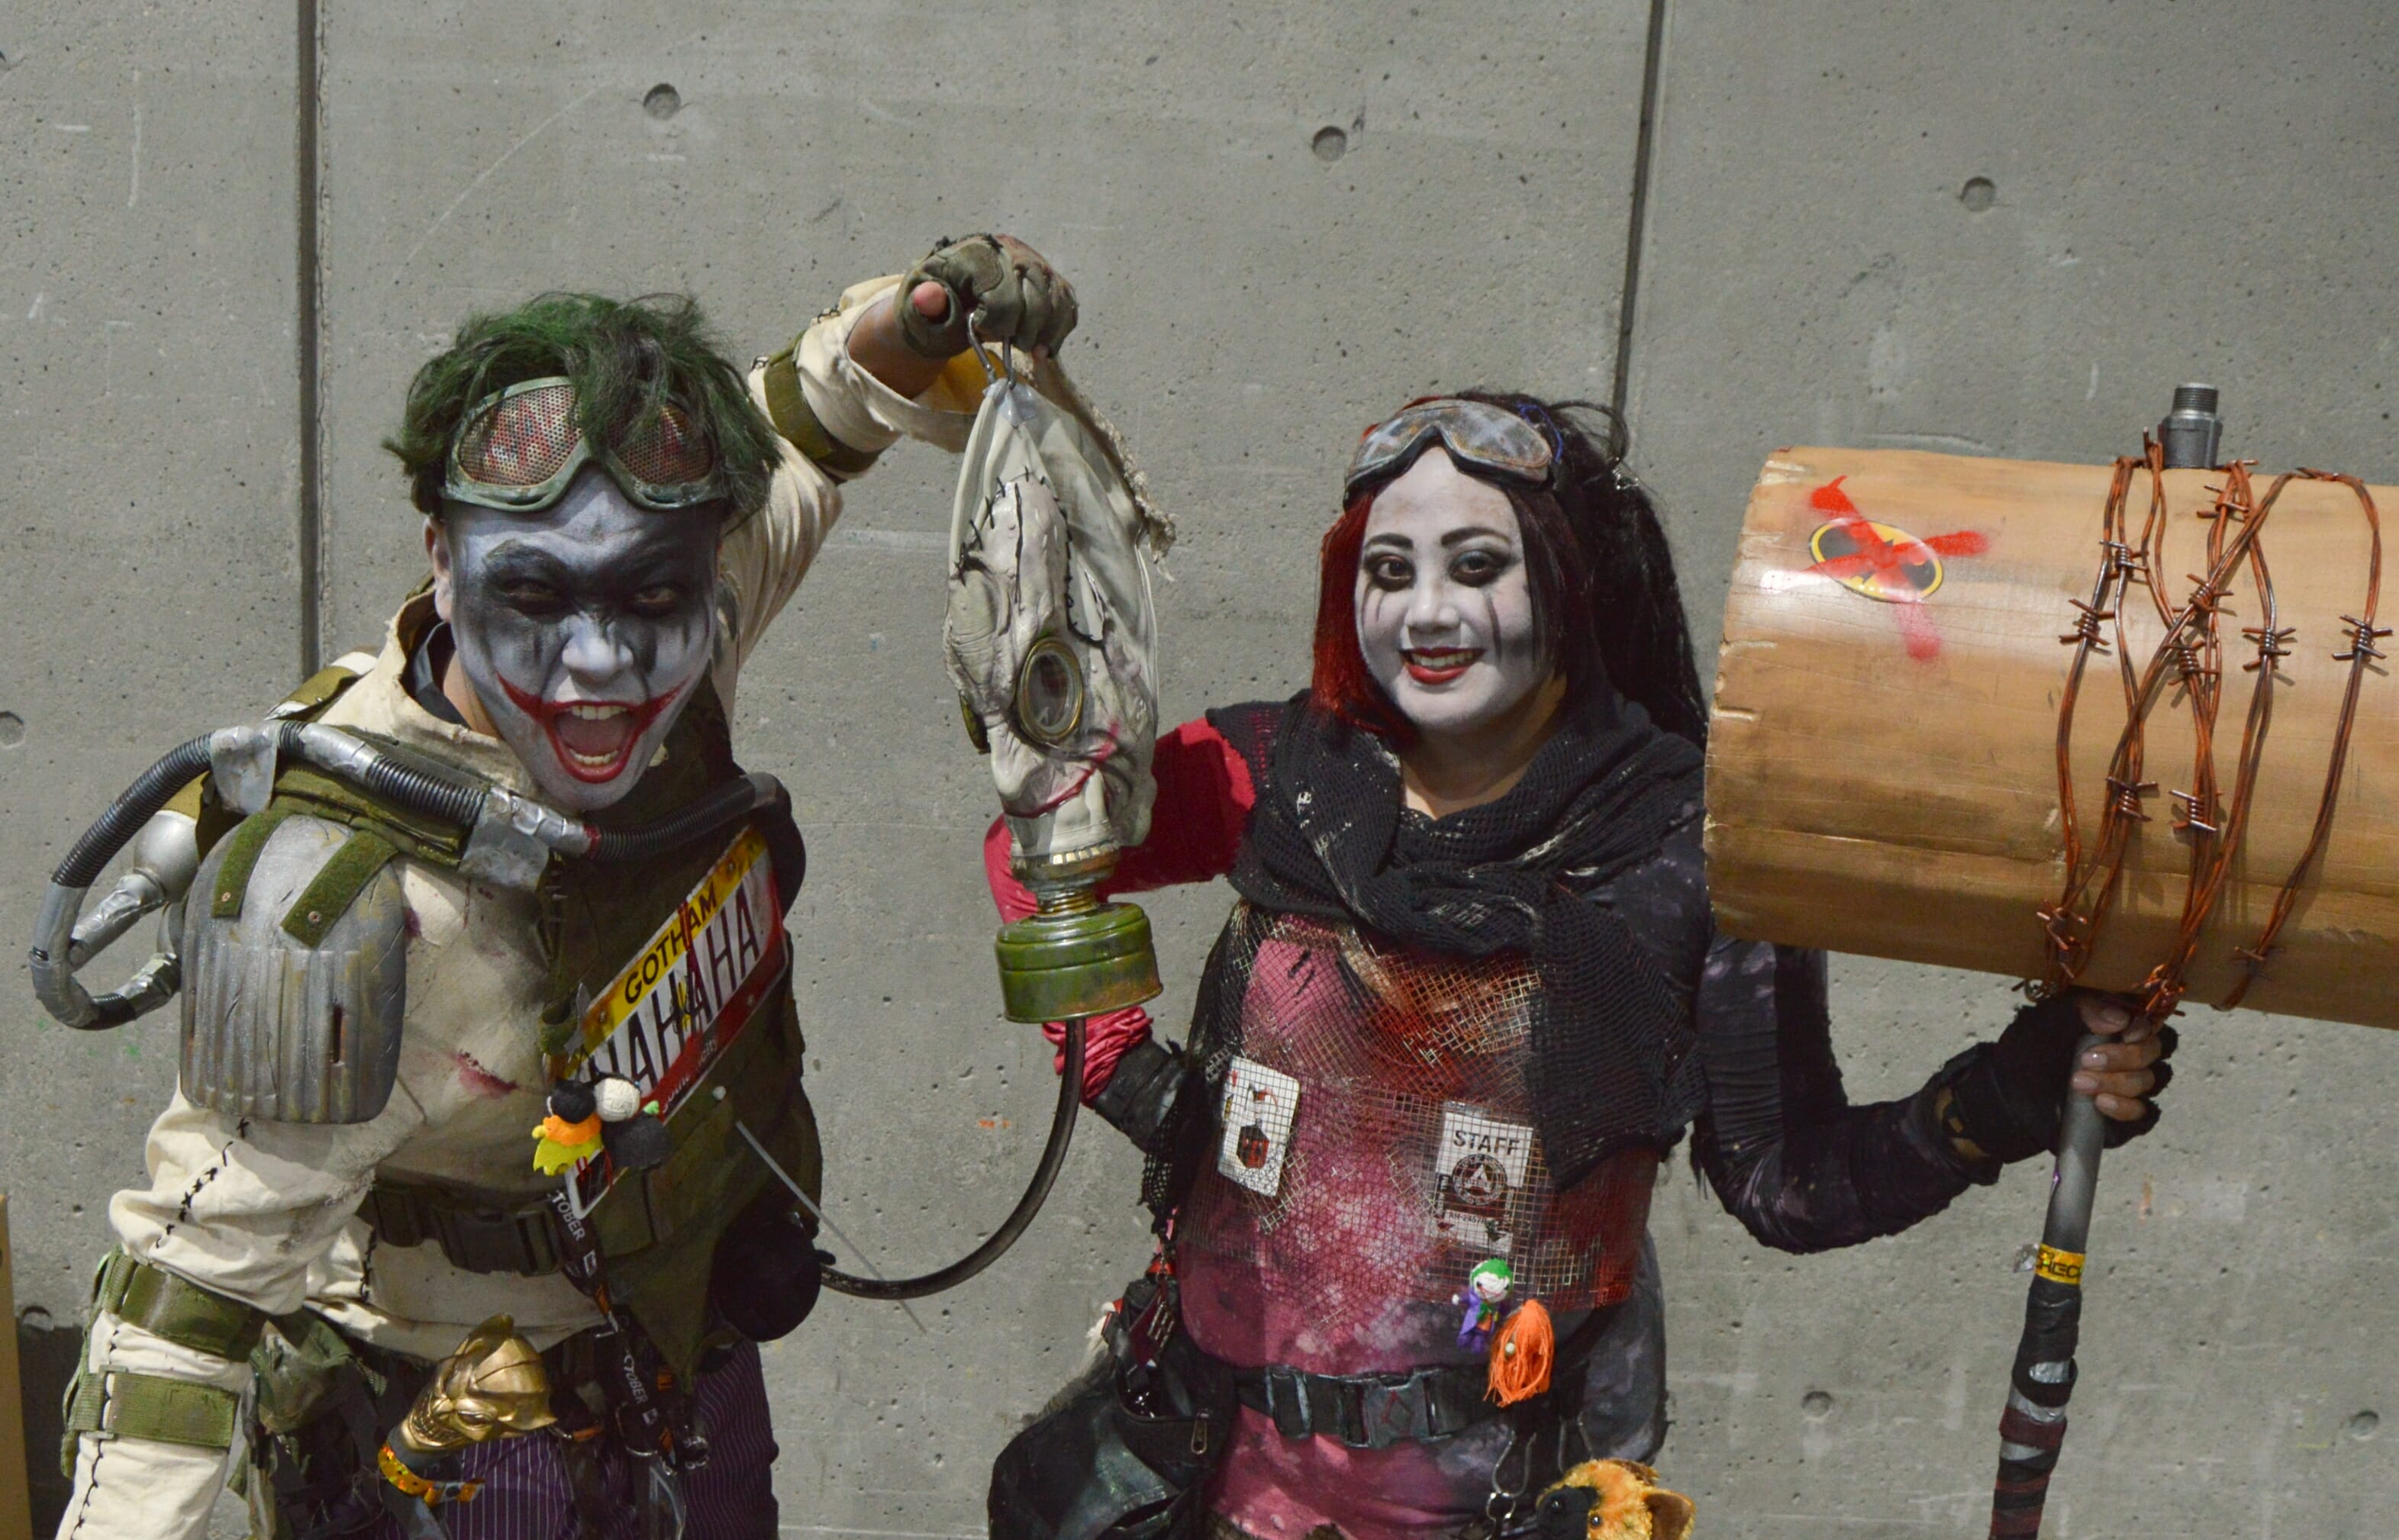 Apocalypse Joker and Harley